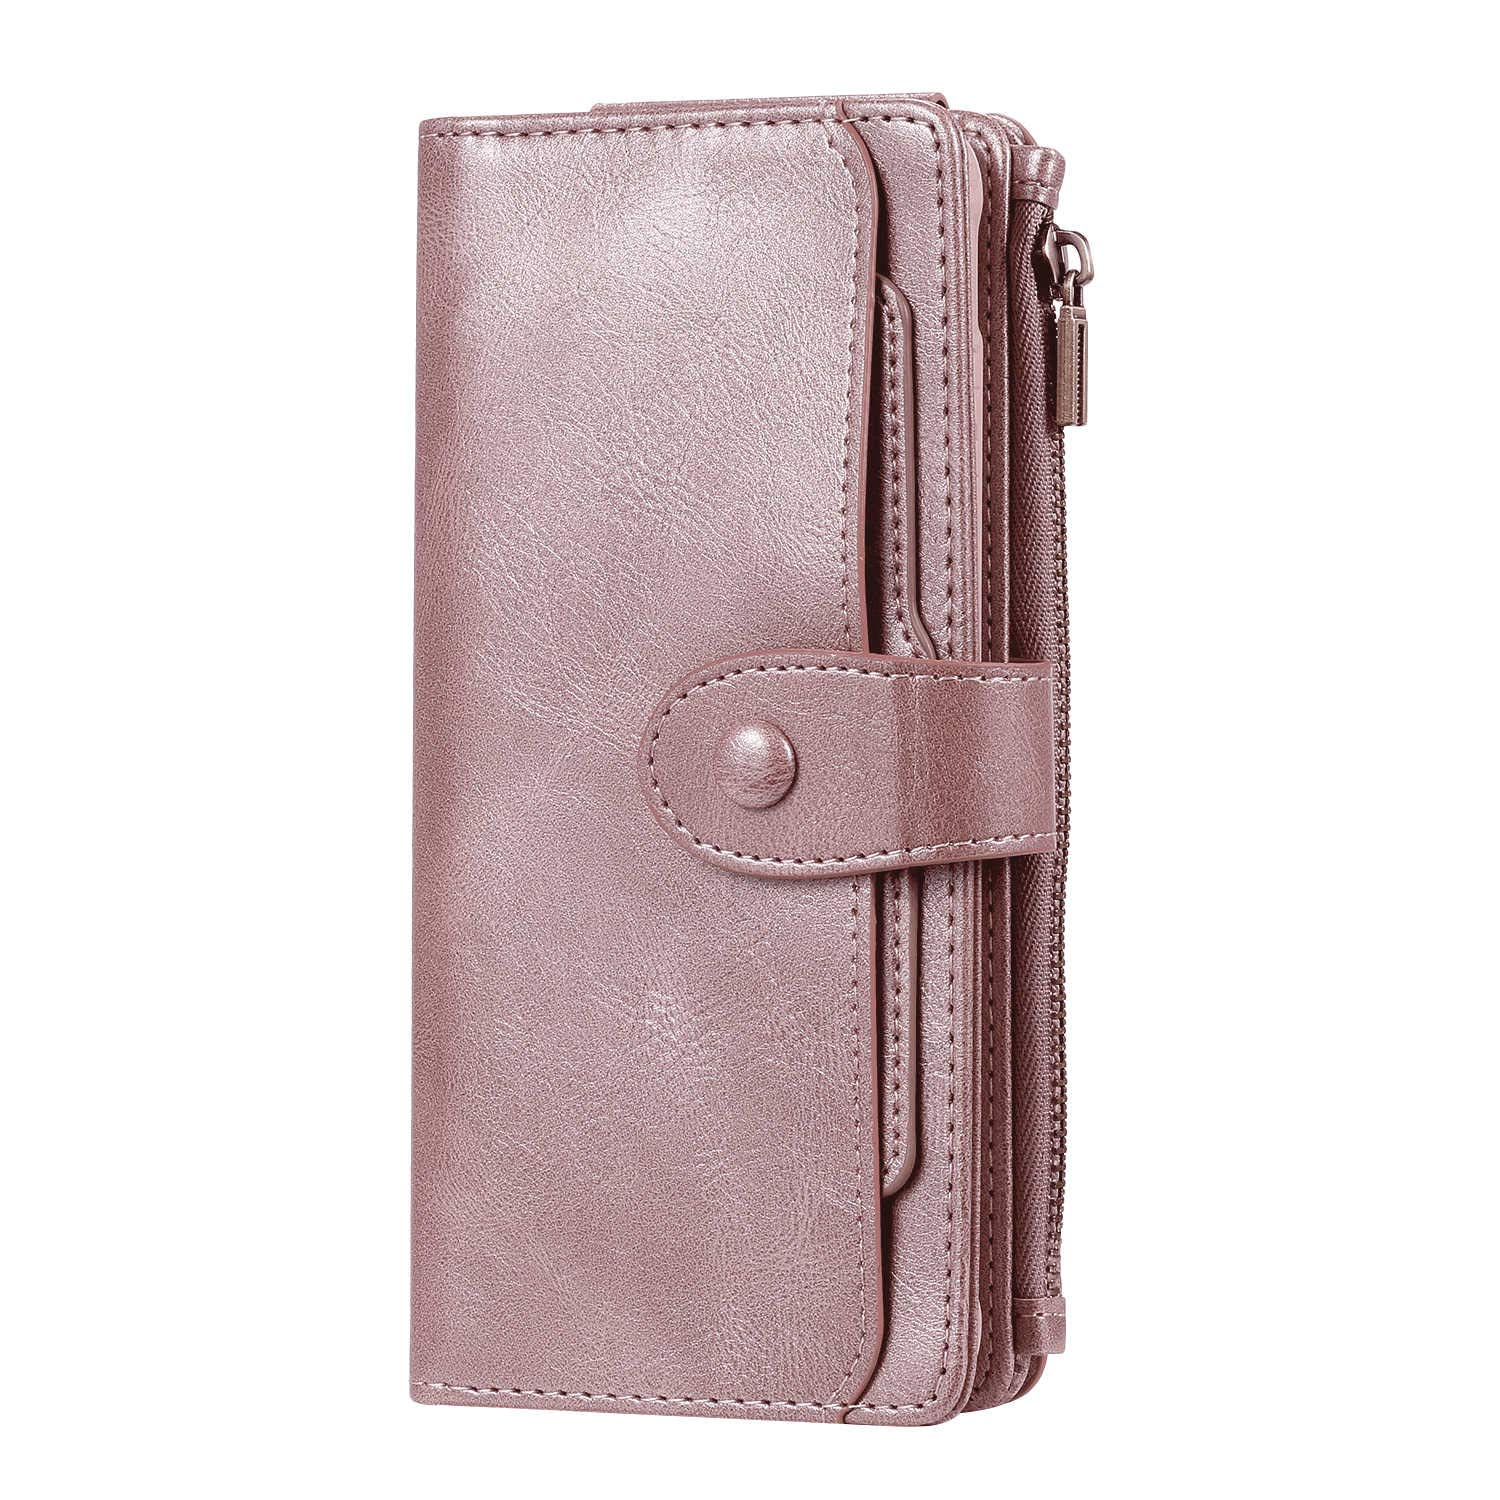 PU Leather Flip Cover Compatible with Samsung Galaxy S10 5G, Elegant rose gold Wallet Case for Samsung Galaxy S10 5G